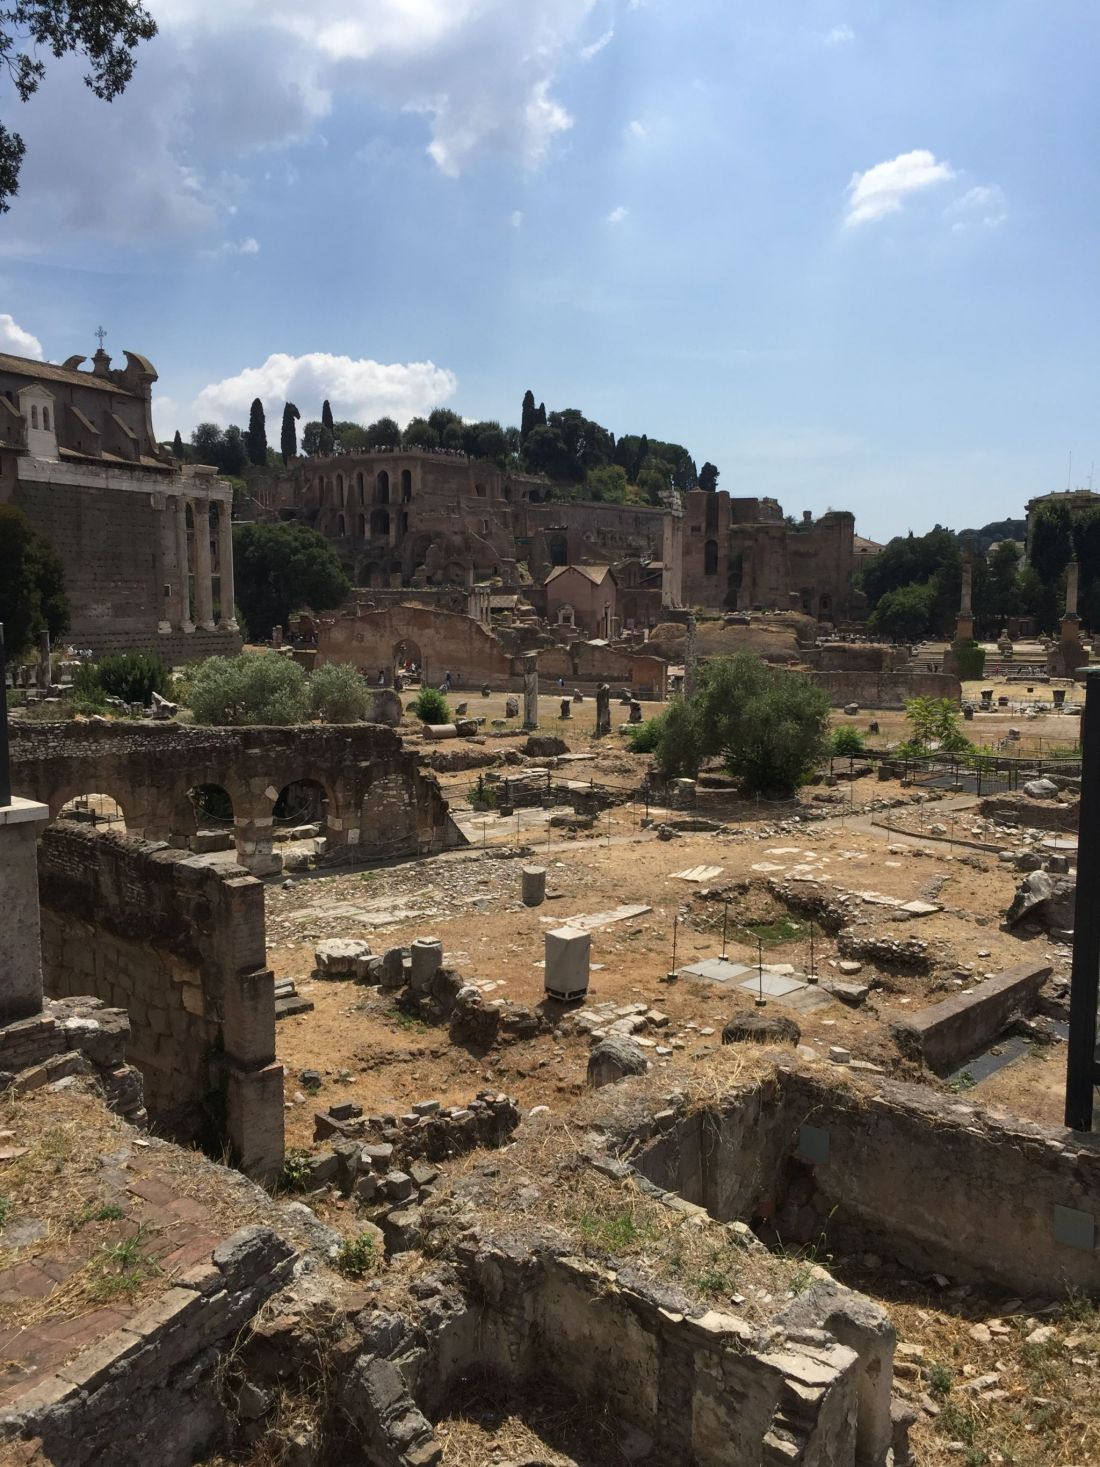 Historic ruins in Rome, Italy